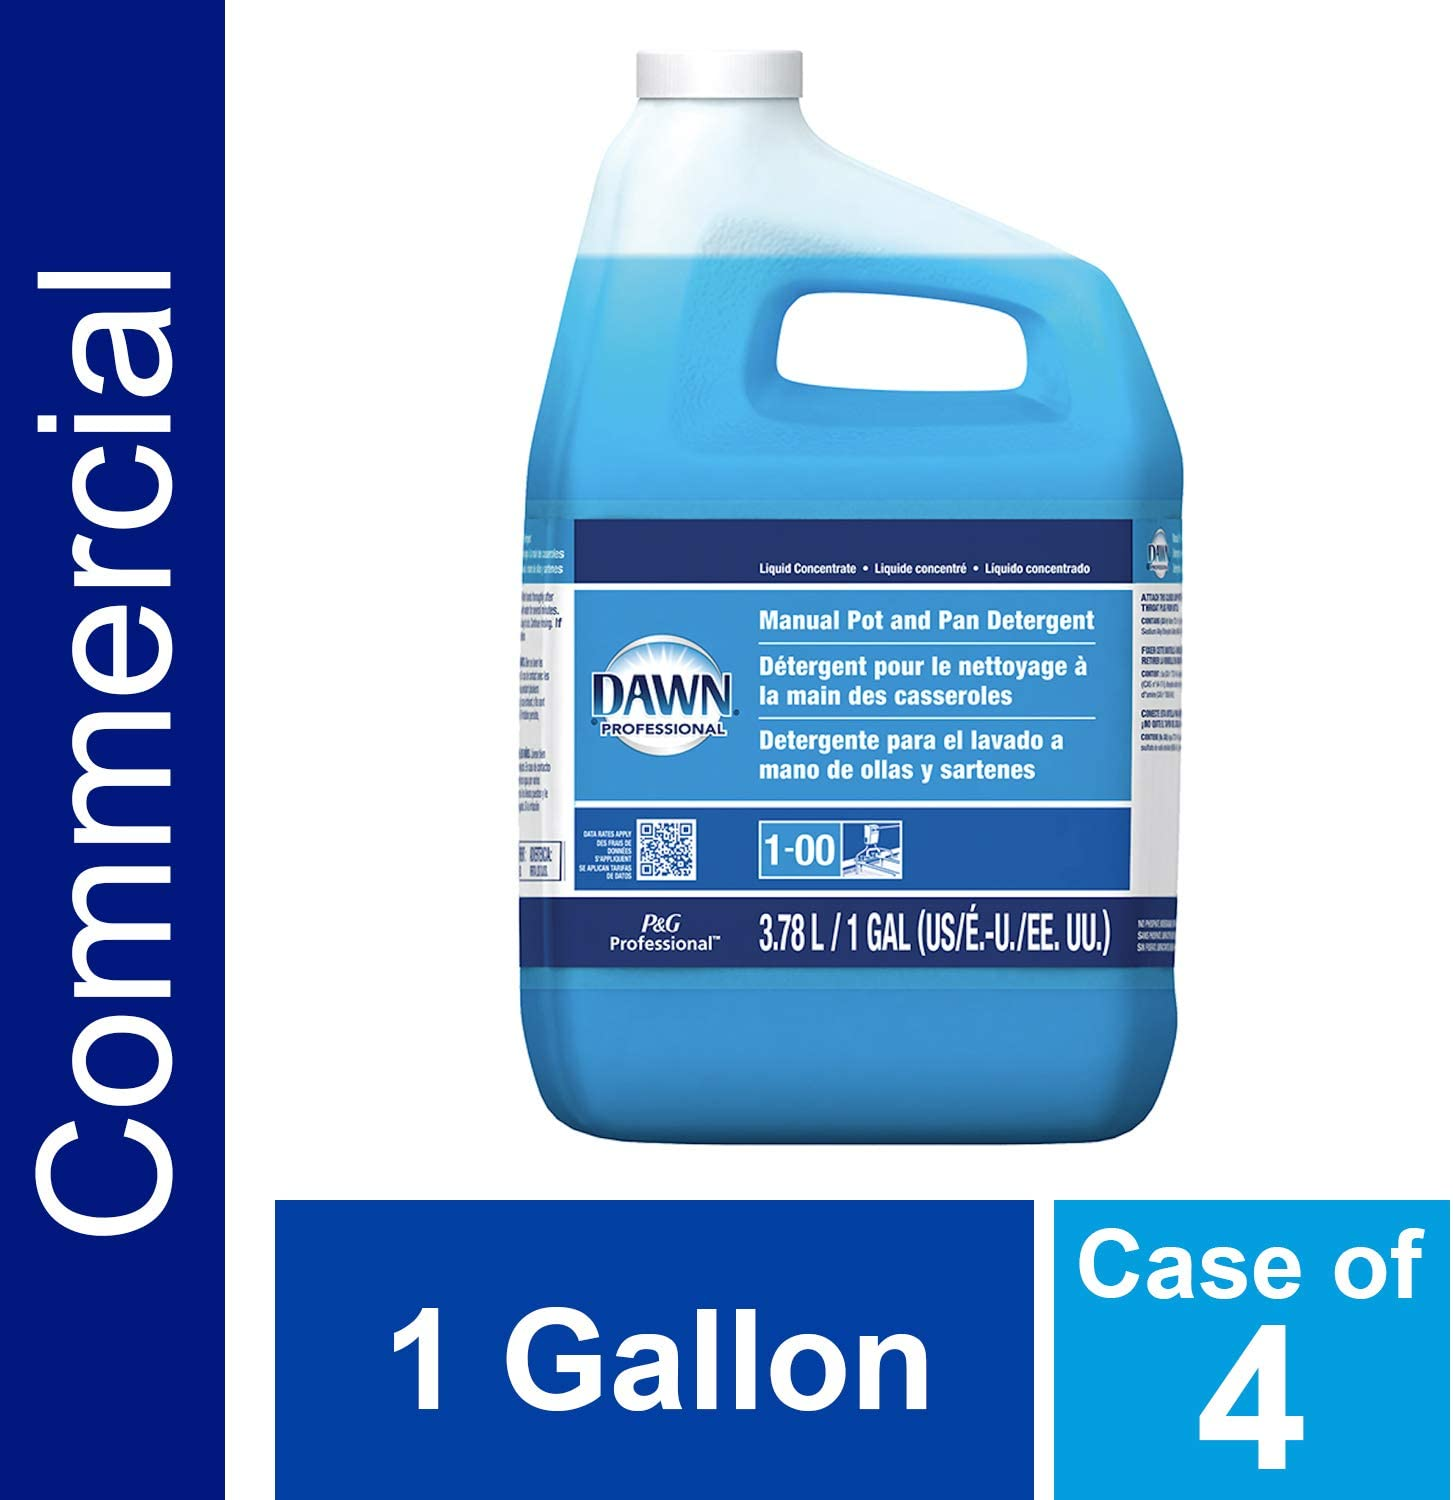 P&G Professional Dawn Professional Manual Pot and Pan Detergent, 1 Gallon (Pack of 4)